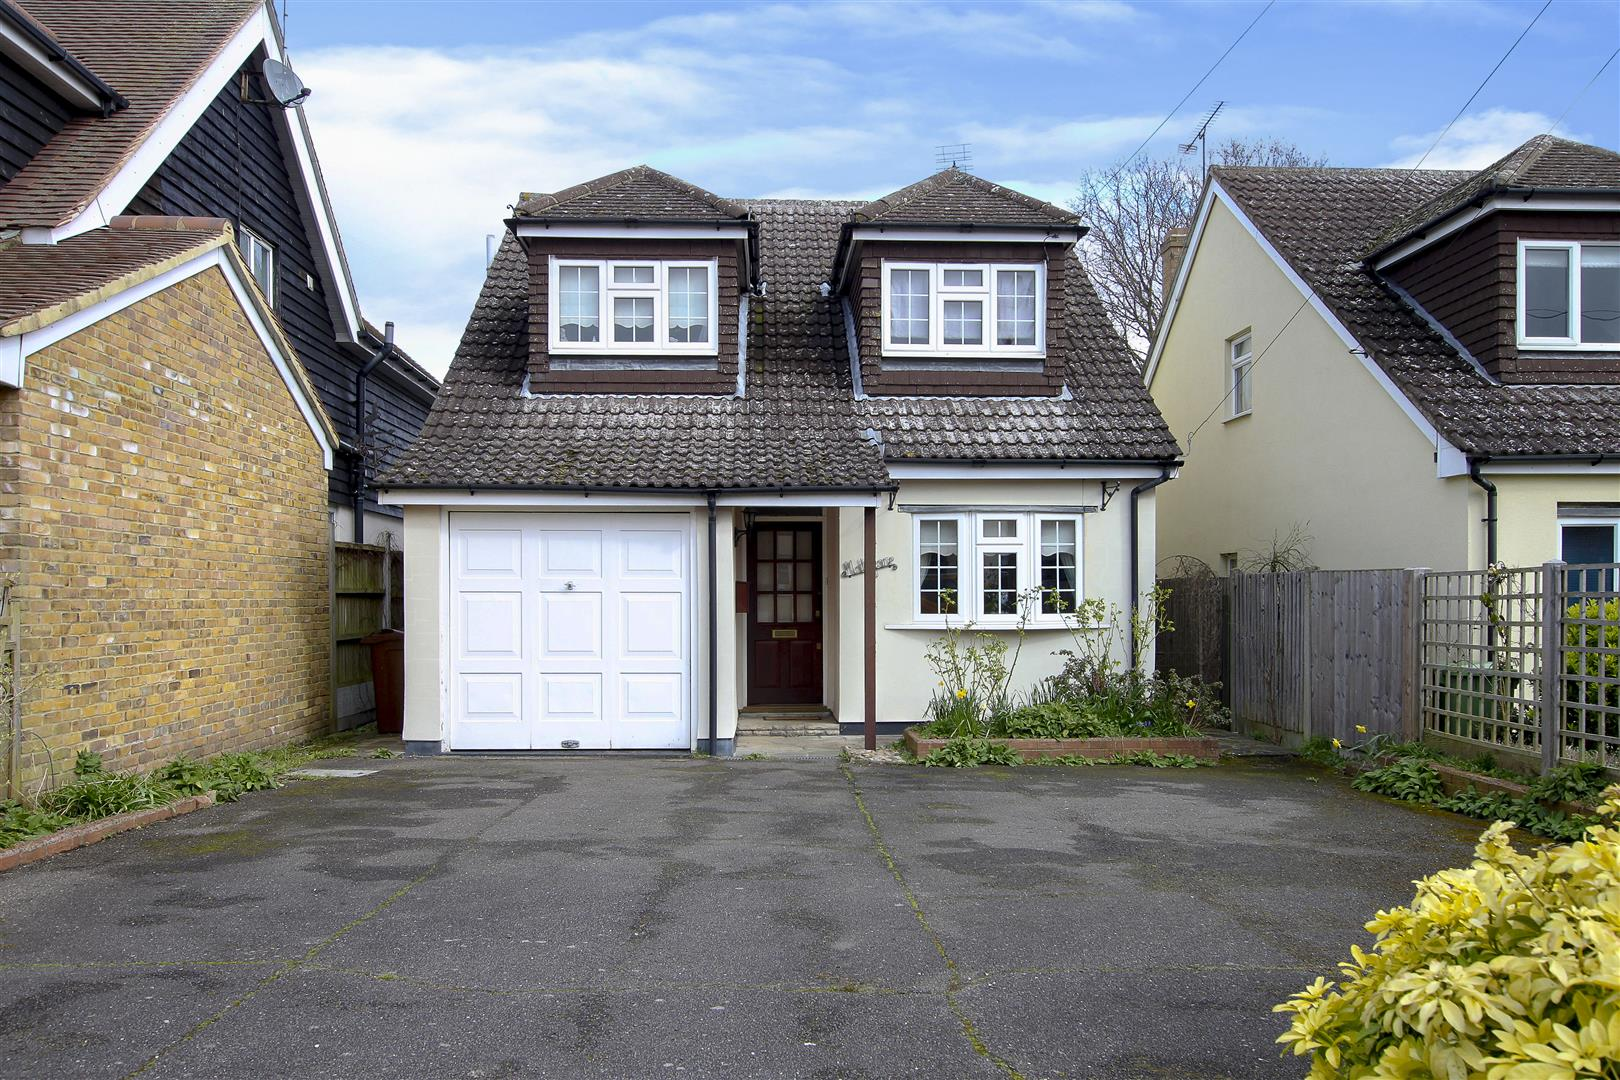 First Avenue, Hook End, Brentwood